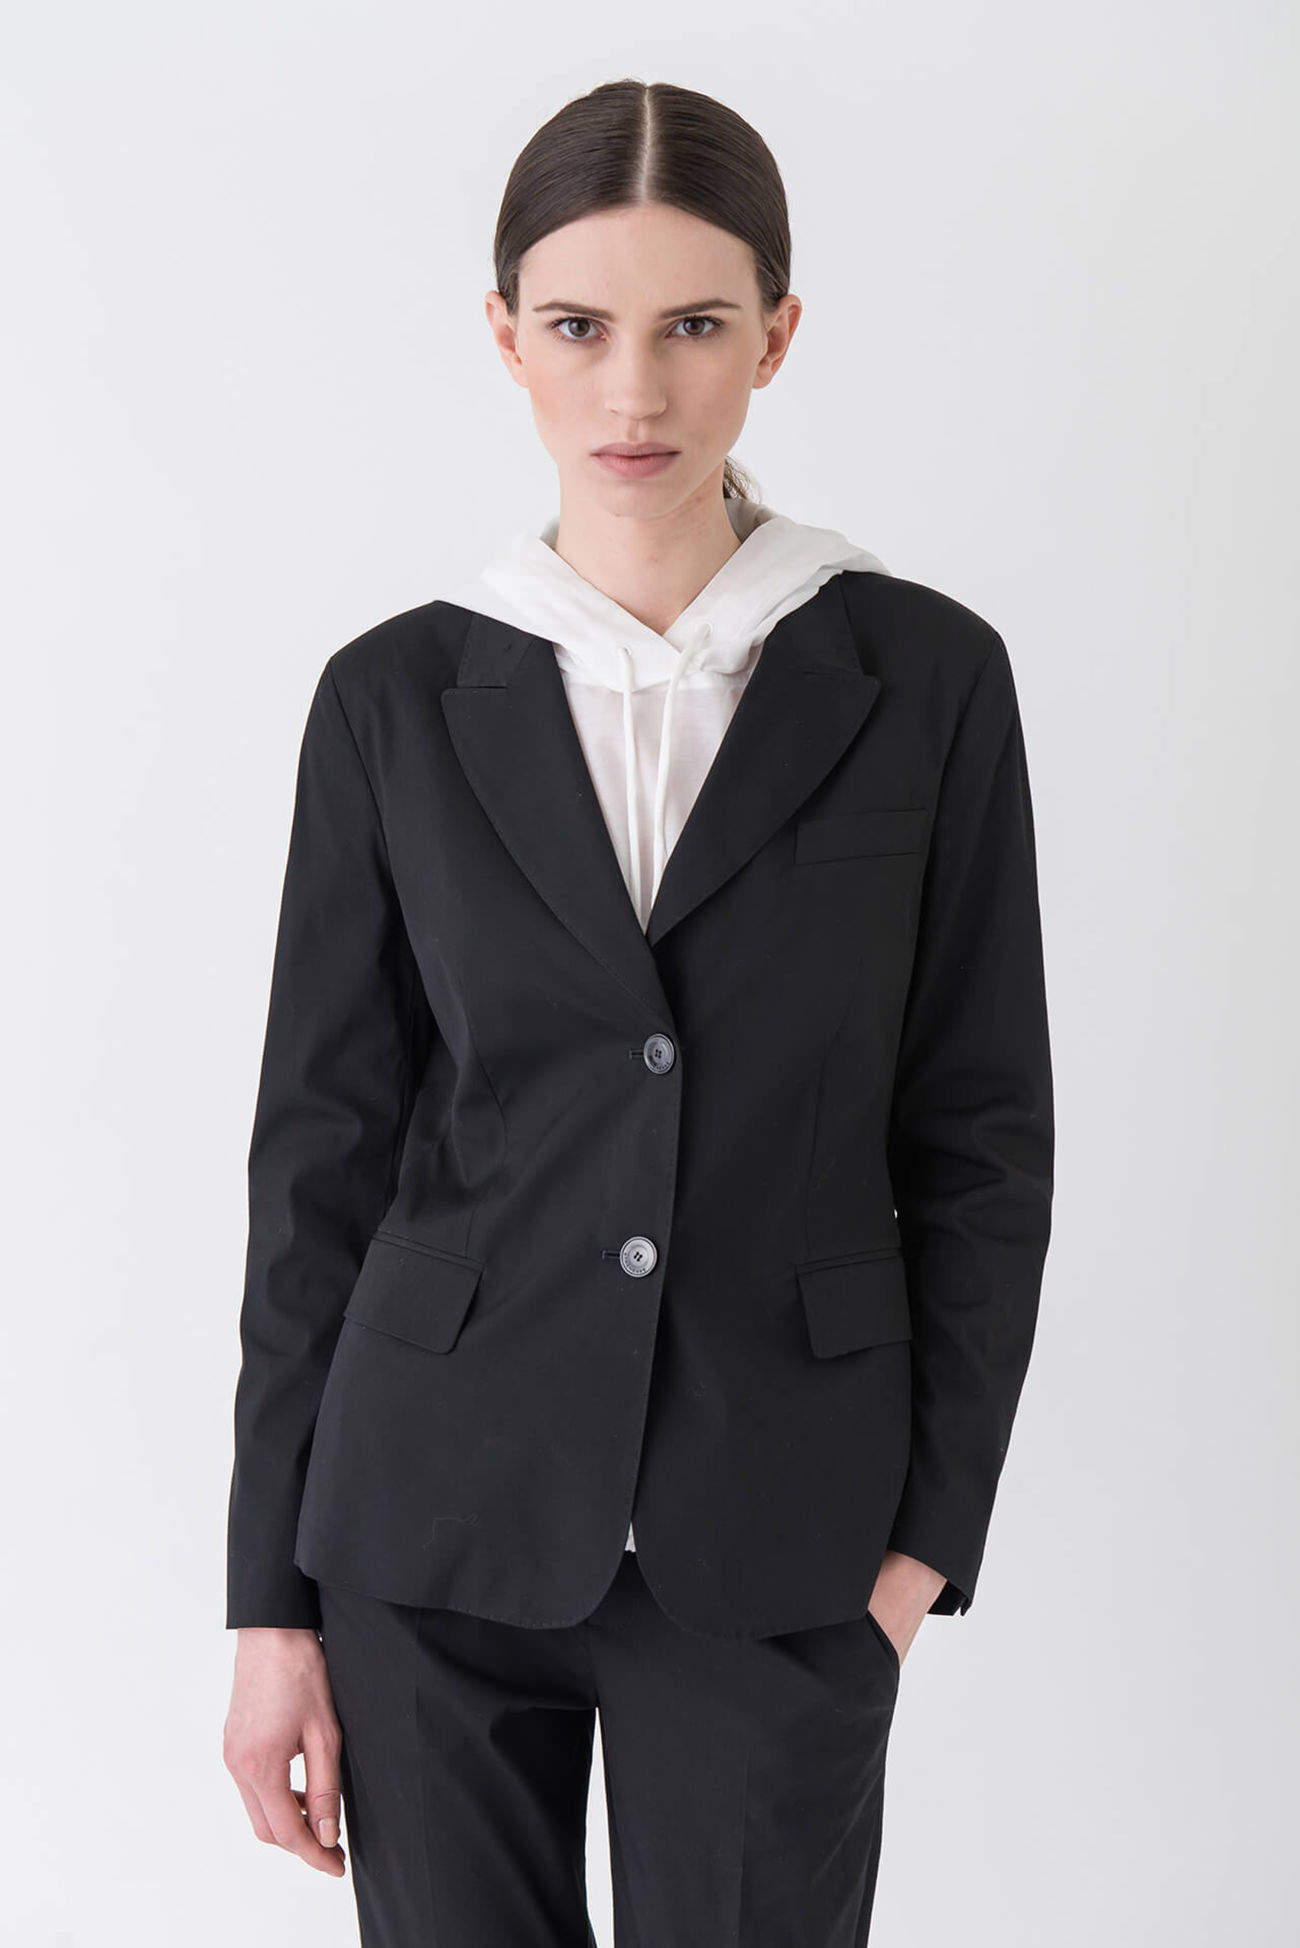 Flawless, modern blazer made of a stretchy cotton blend